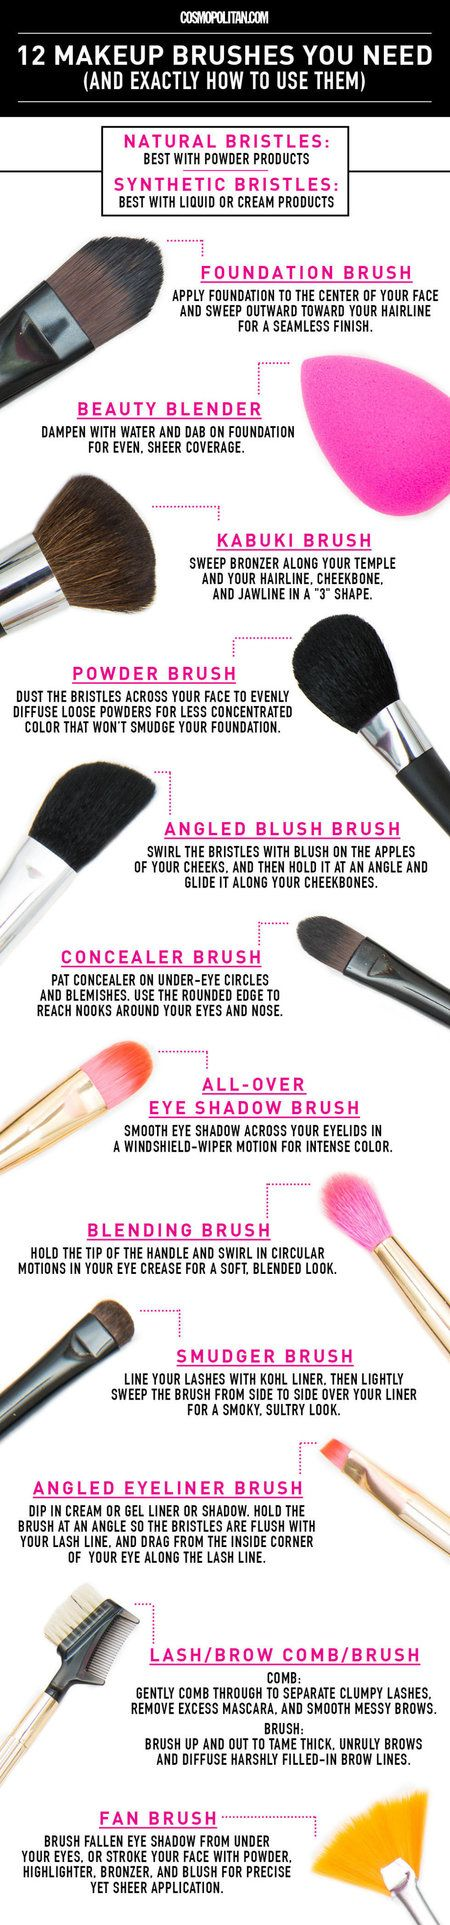 12 Makeup Tools You Need & Exactly How to Use Them (GIF's) - #makeupbrushes #makeuptools #cosmopolitan